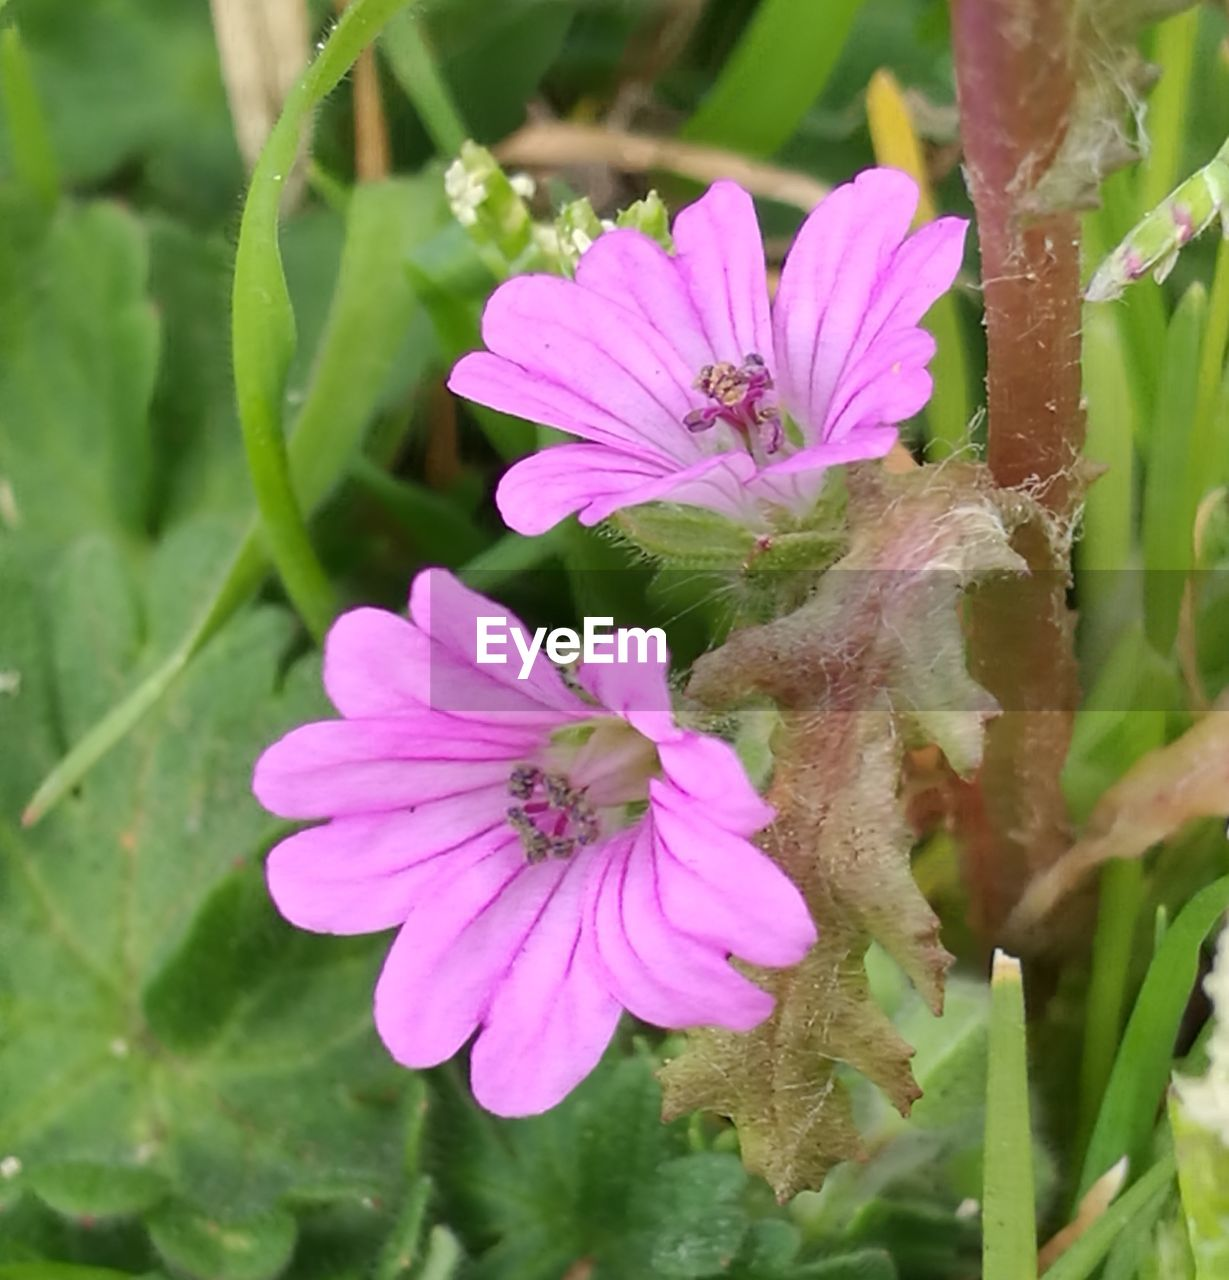 flower, nature, growth, plant, beauty in nature, fragility, petal, freshness, outdoors, flower head, no people, blooming, green color, day, close-up, leaf